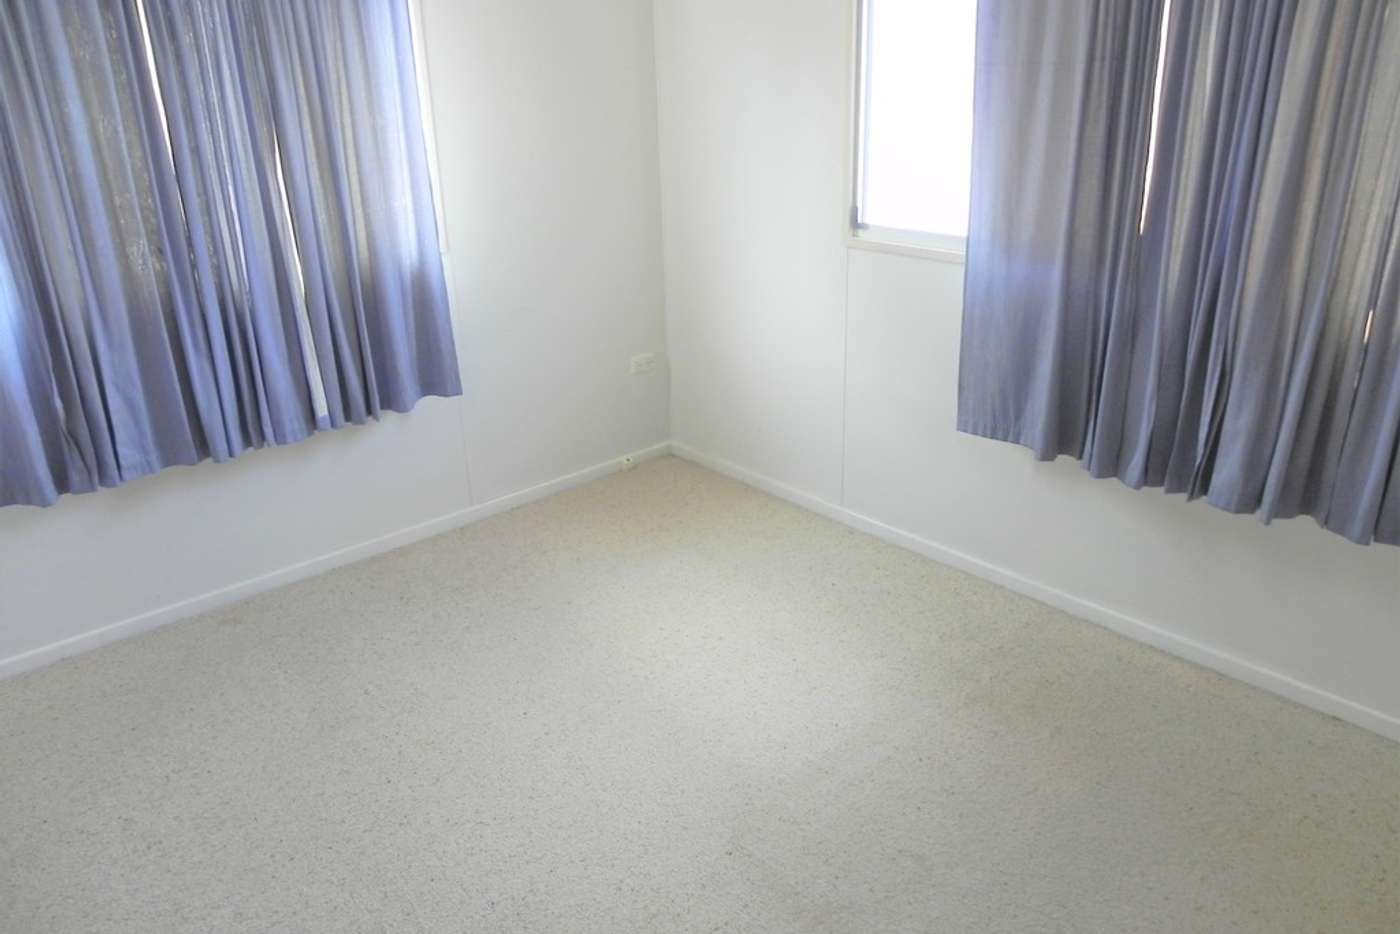 Sixth view of Homely house listing, 66 GEORGE STREET, Toogoolawah QLD 4313